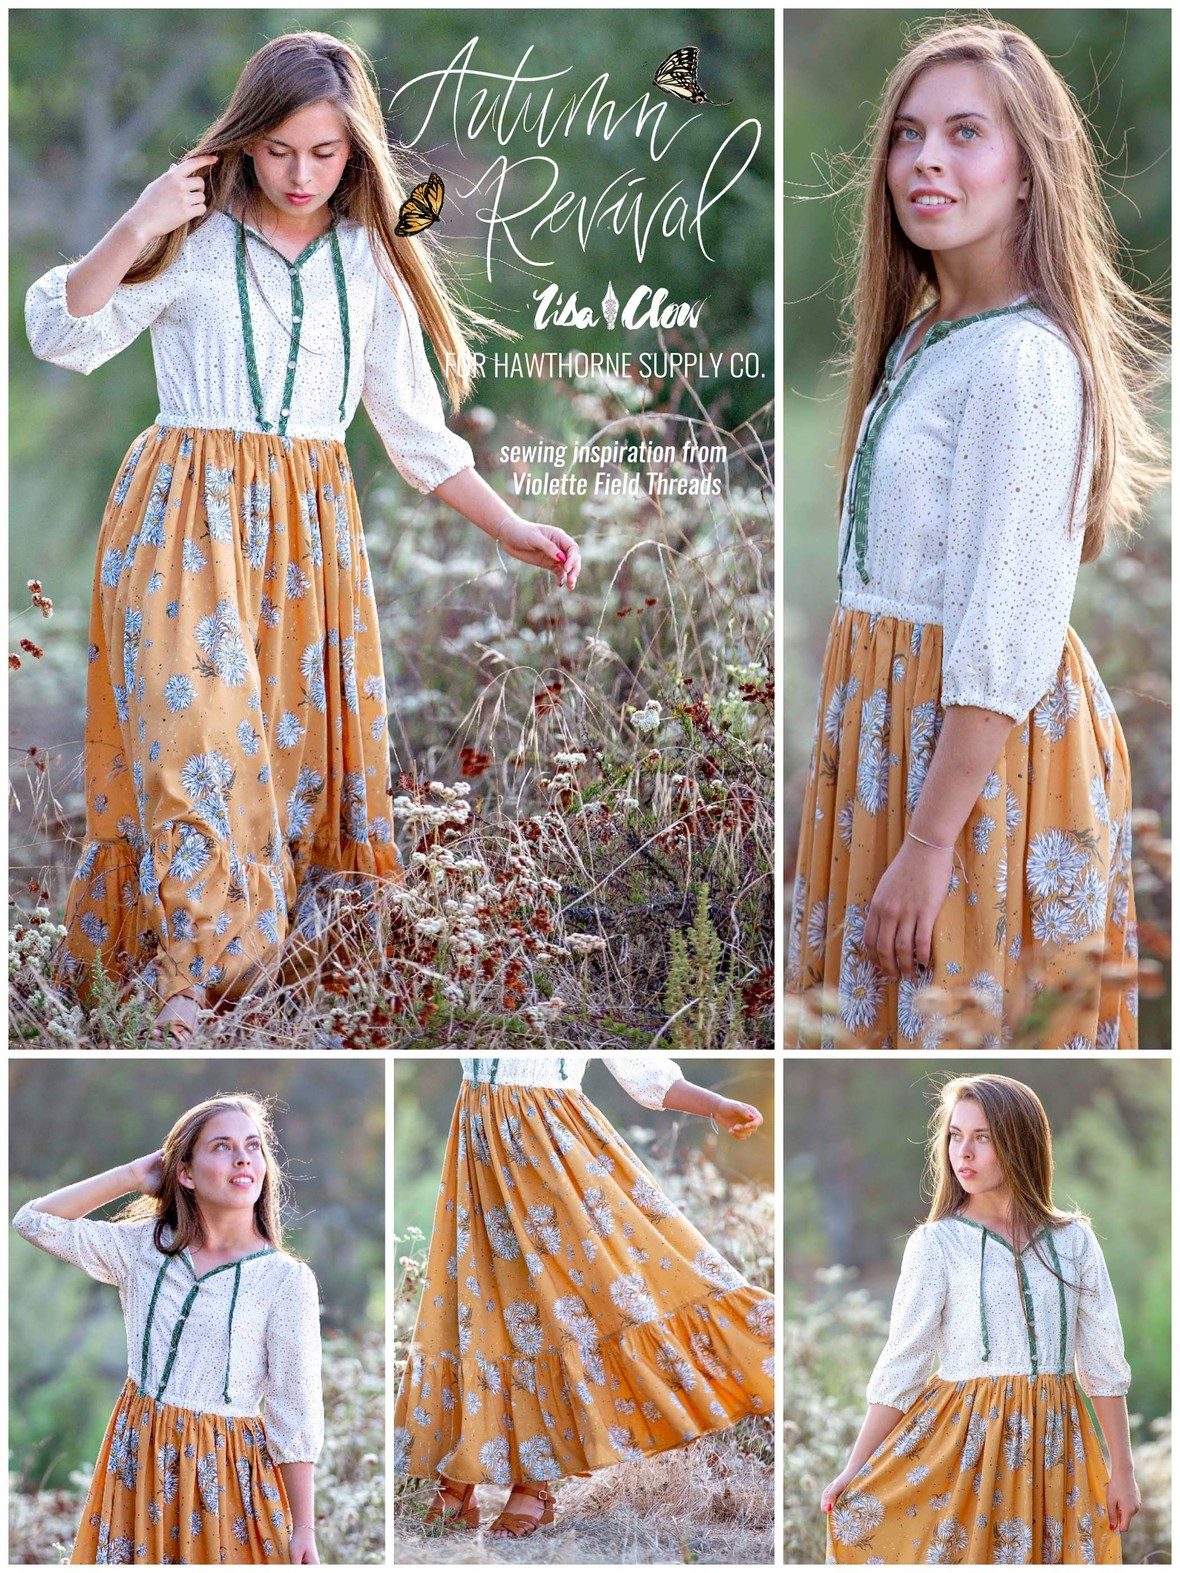 Autumn Revival Dress My Sweet Sunshine and Hawthorne Supply Co